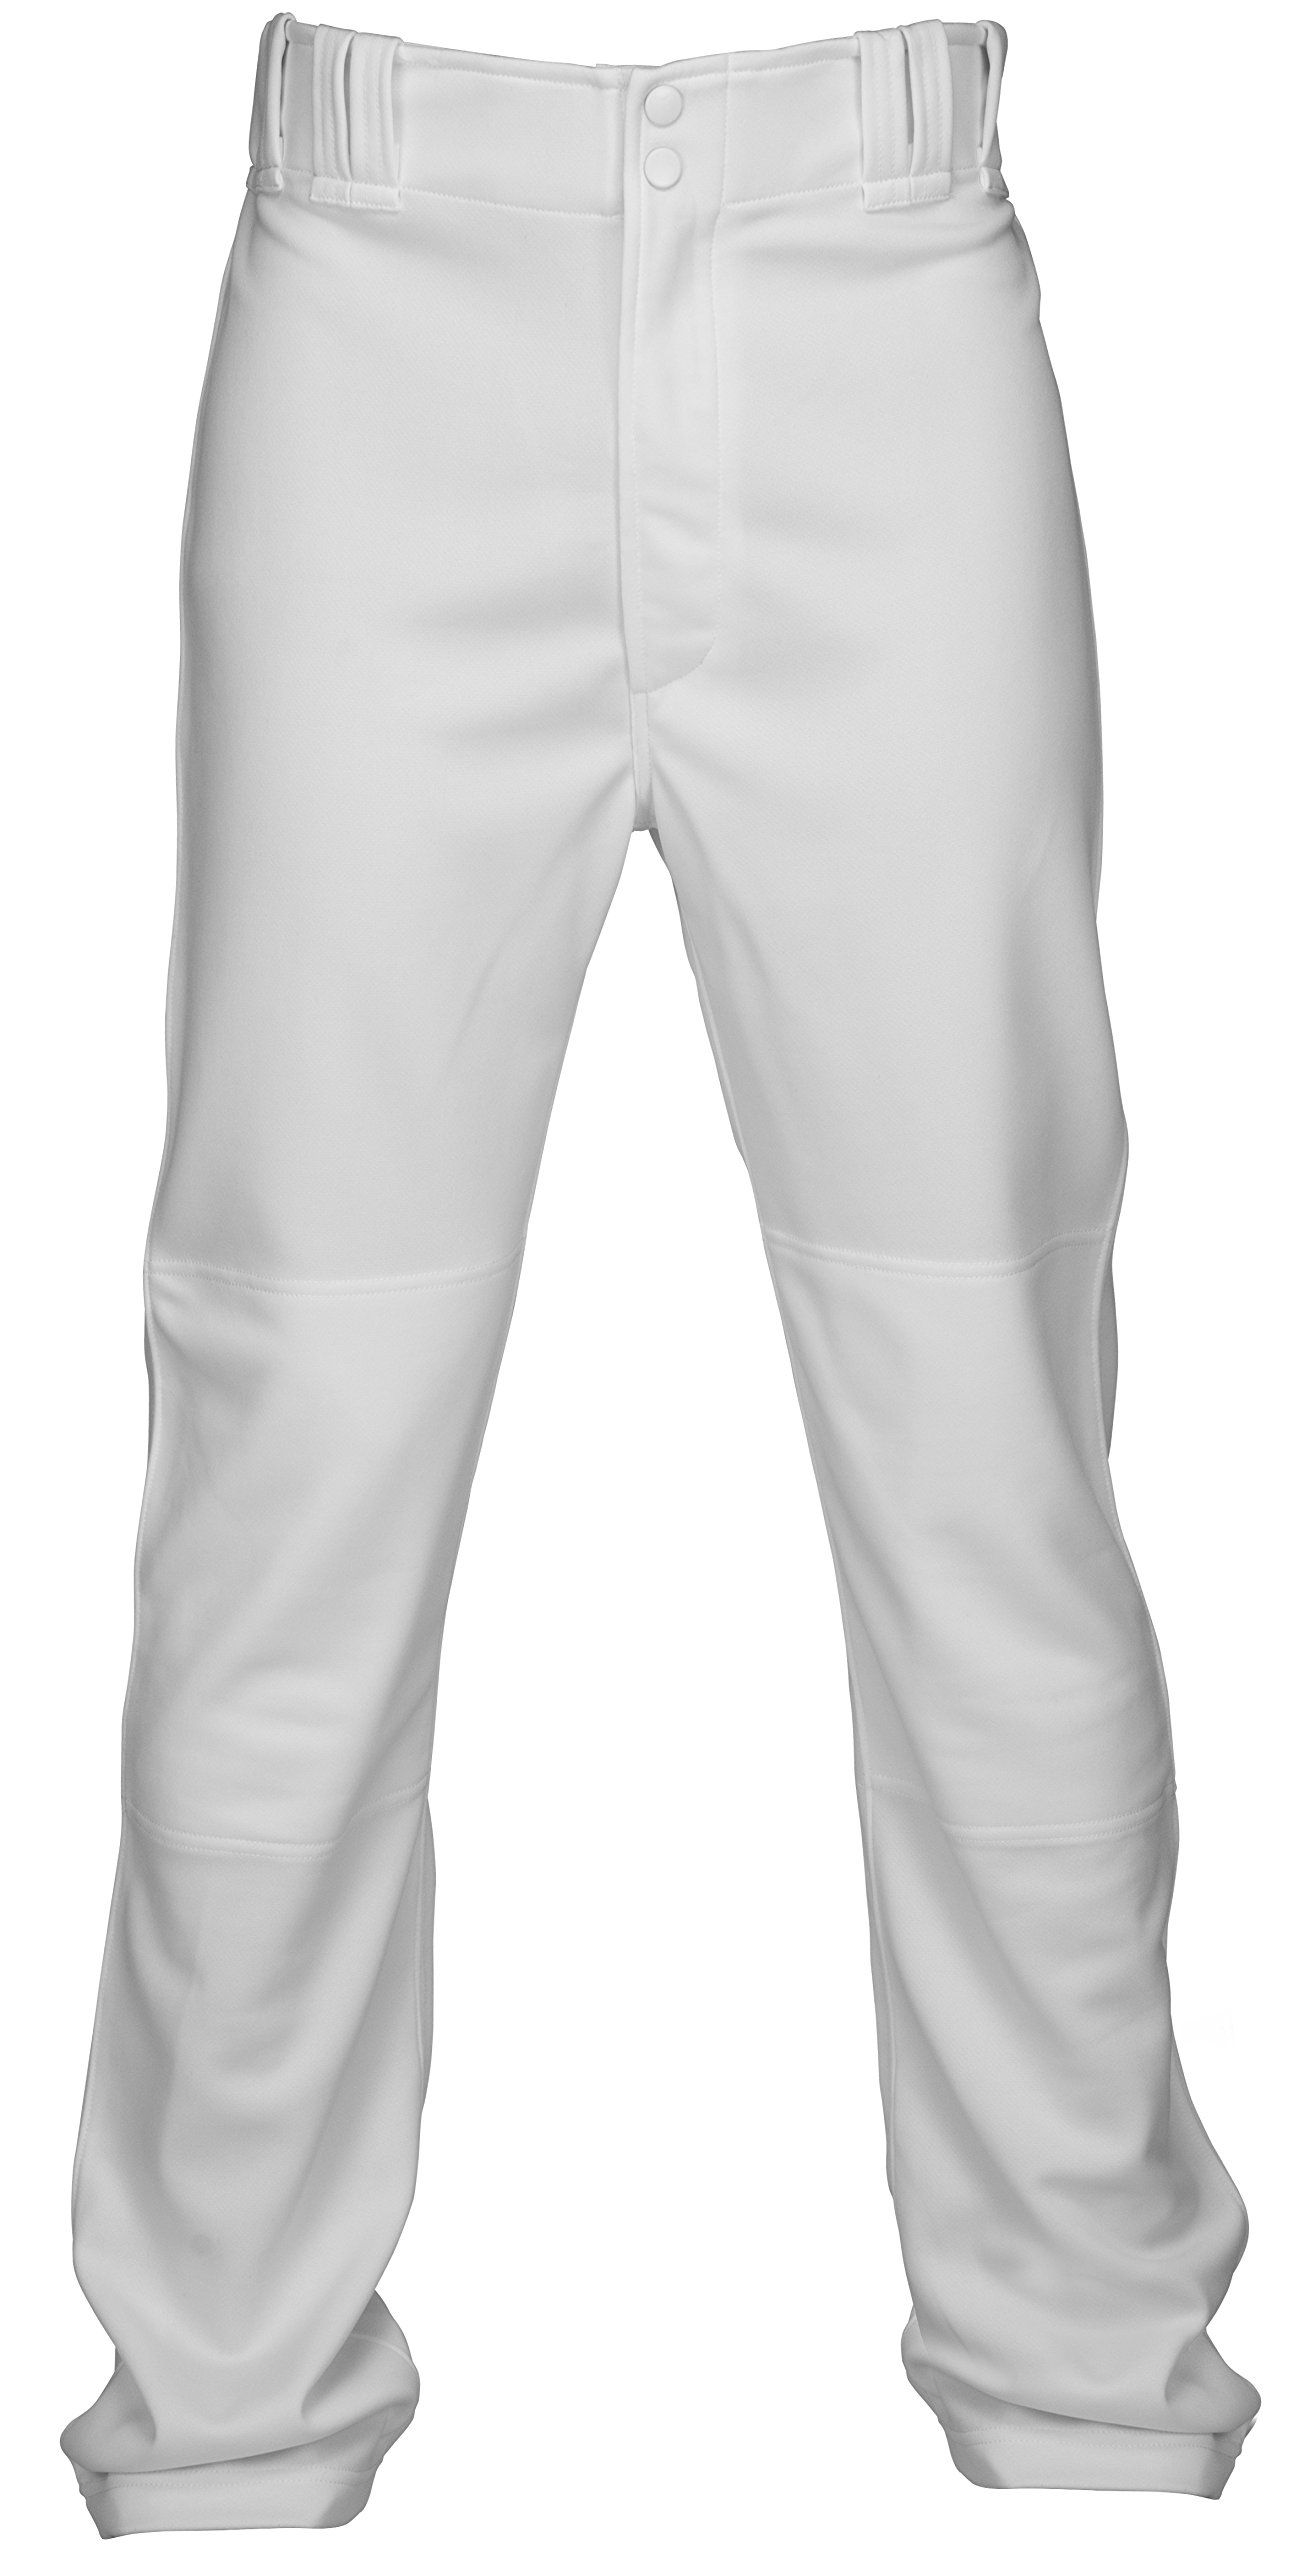 Marucci Youth Performance Stretch Baseball Pant, White, X-Large by Marucci